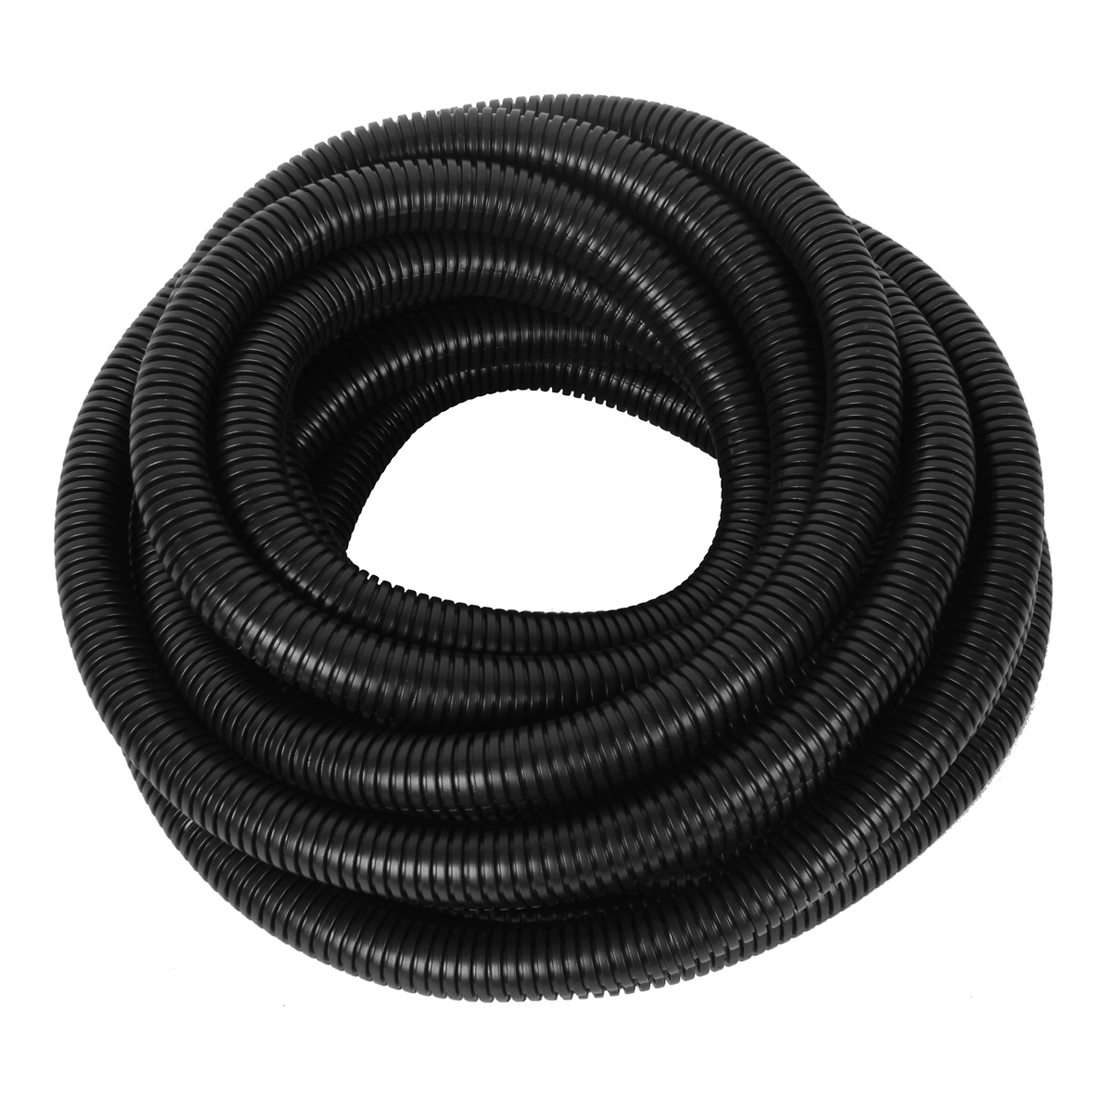 21.5mm x 17mm Dia Flexible Bellows Hose Pipe Wire Protect Corrugated Conduit Tube Tubing 8.4M Long